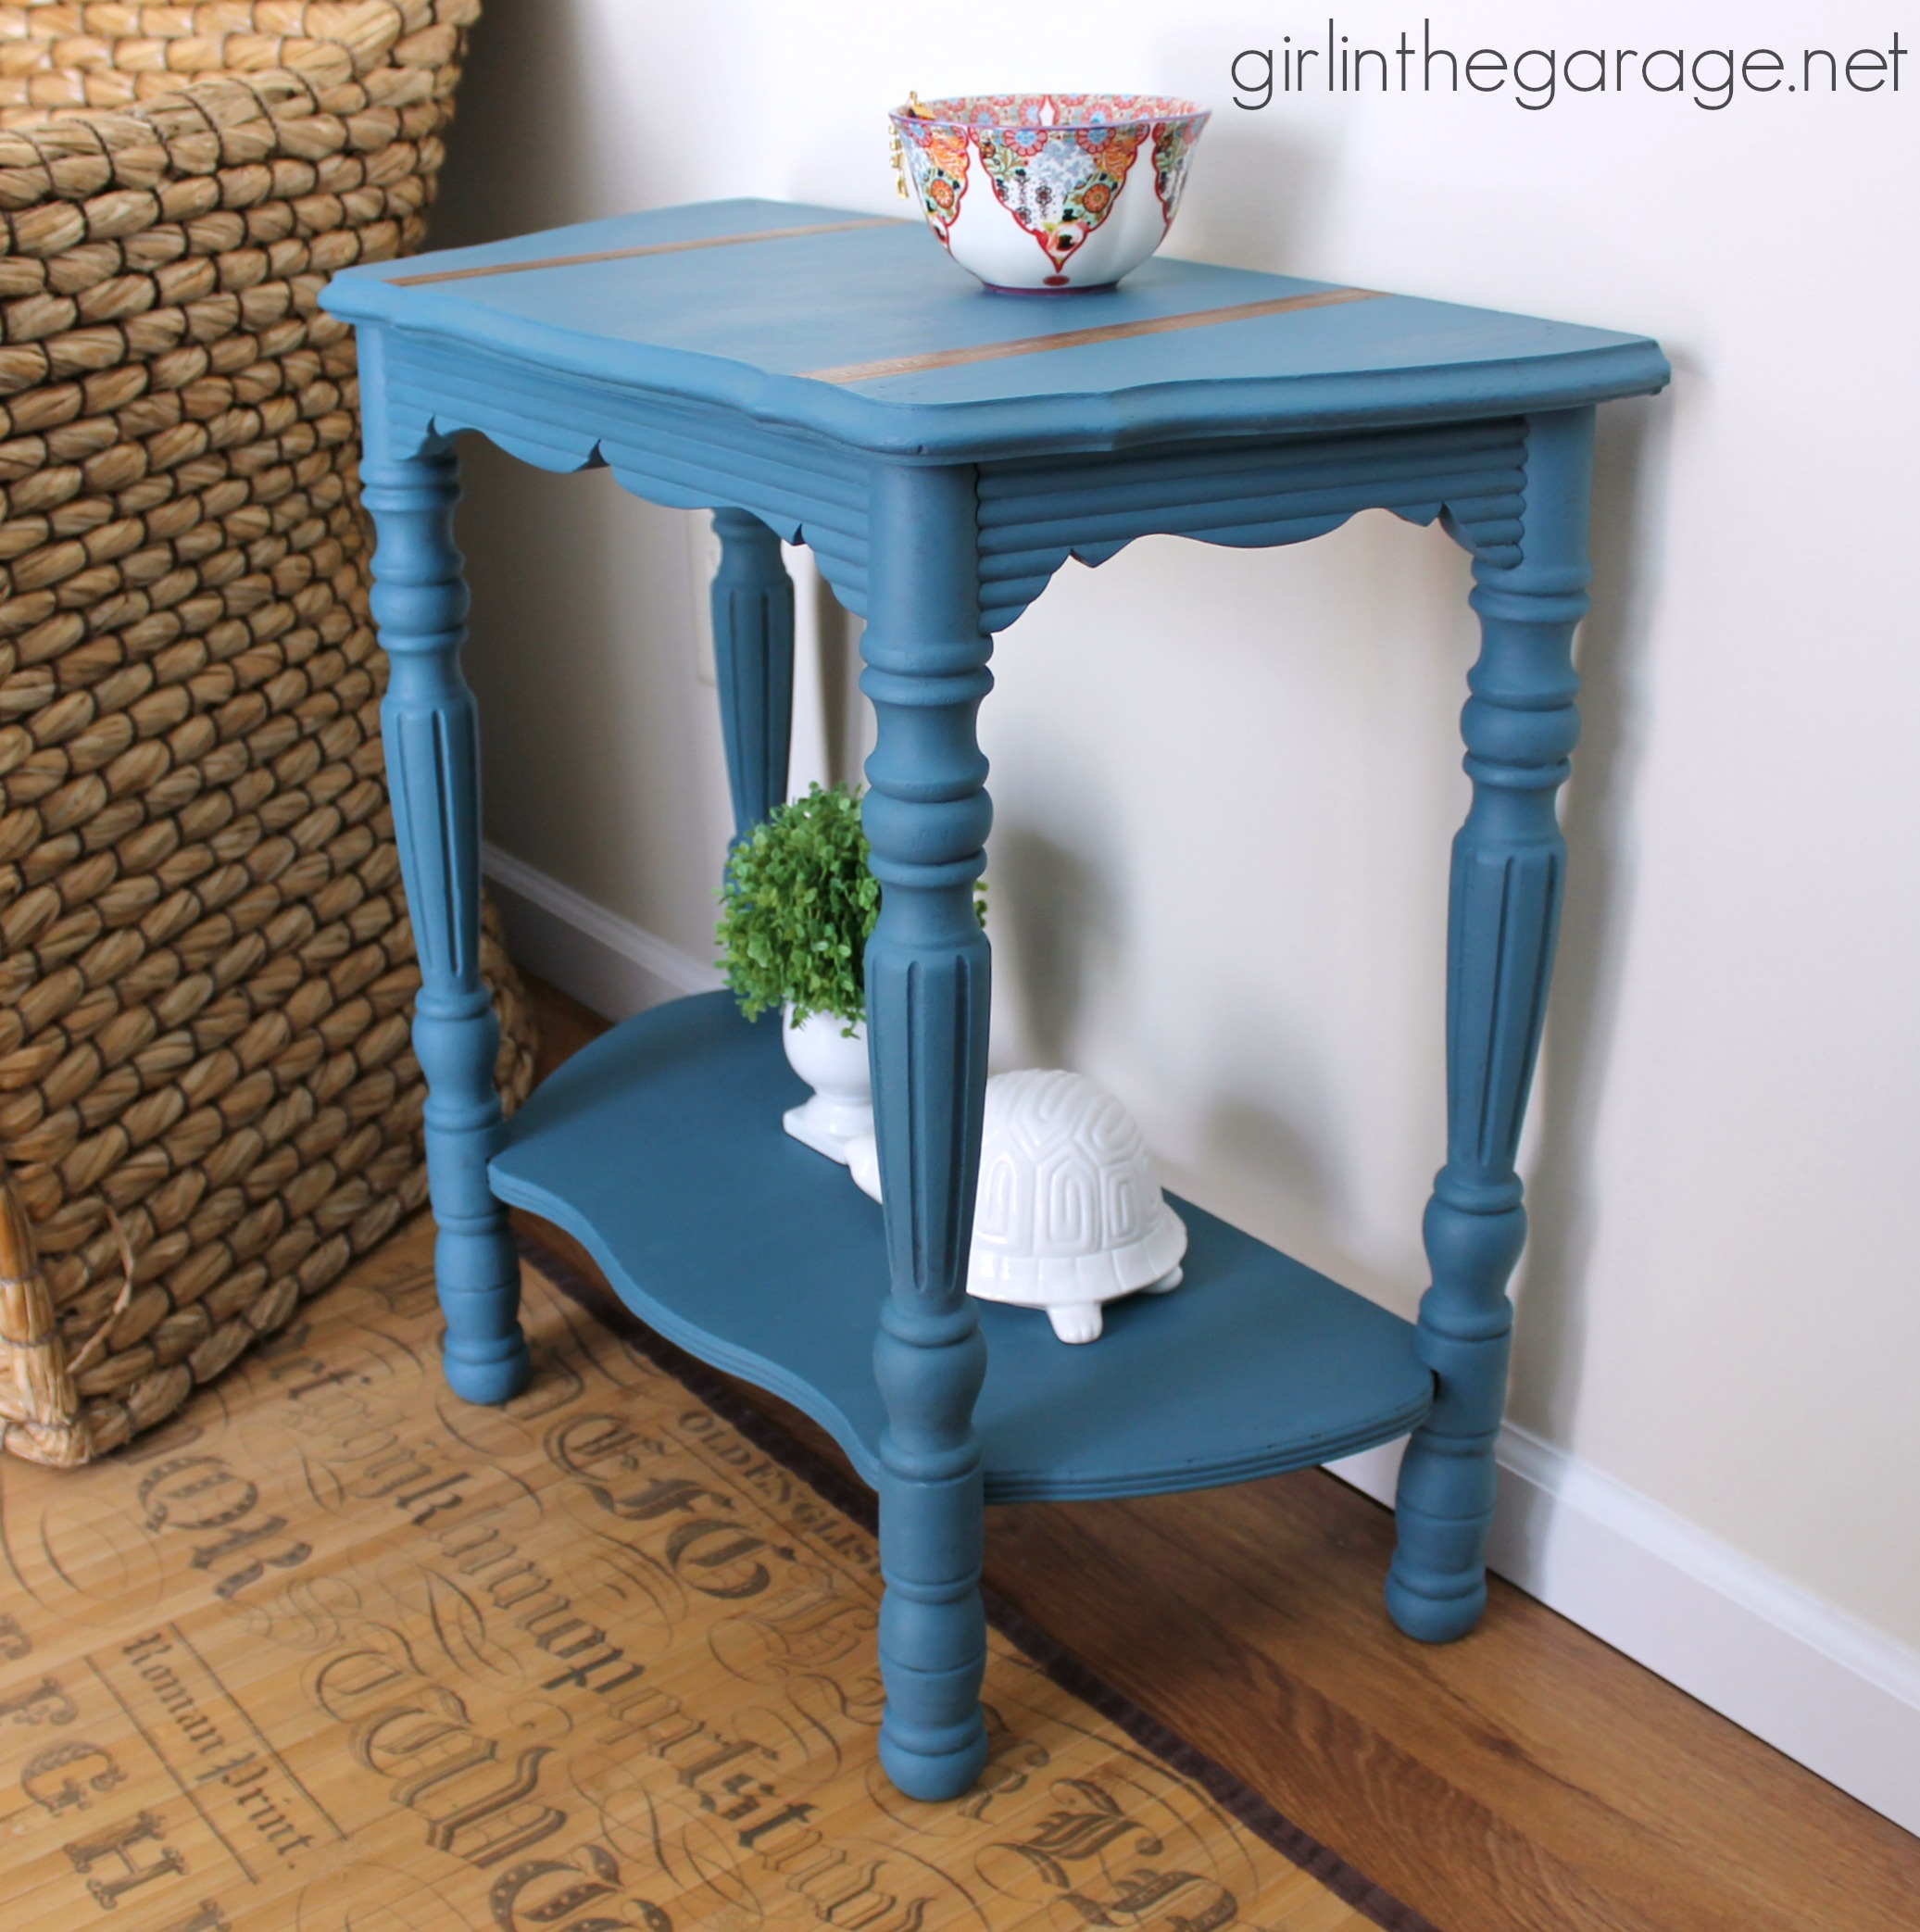 Vintage Demilune Table Makeover With Annie Sloan Chalk Paint In Aubusson  Blue. Girlinthegarage.net